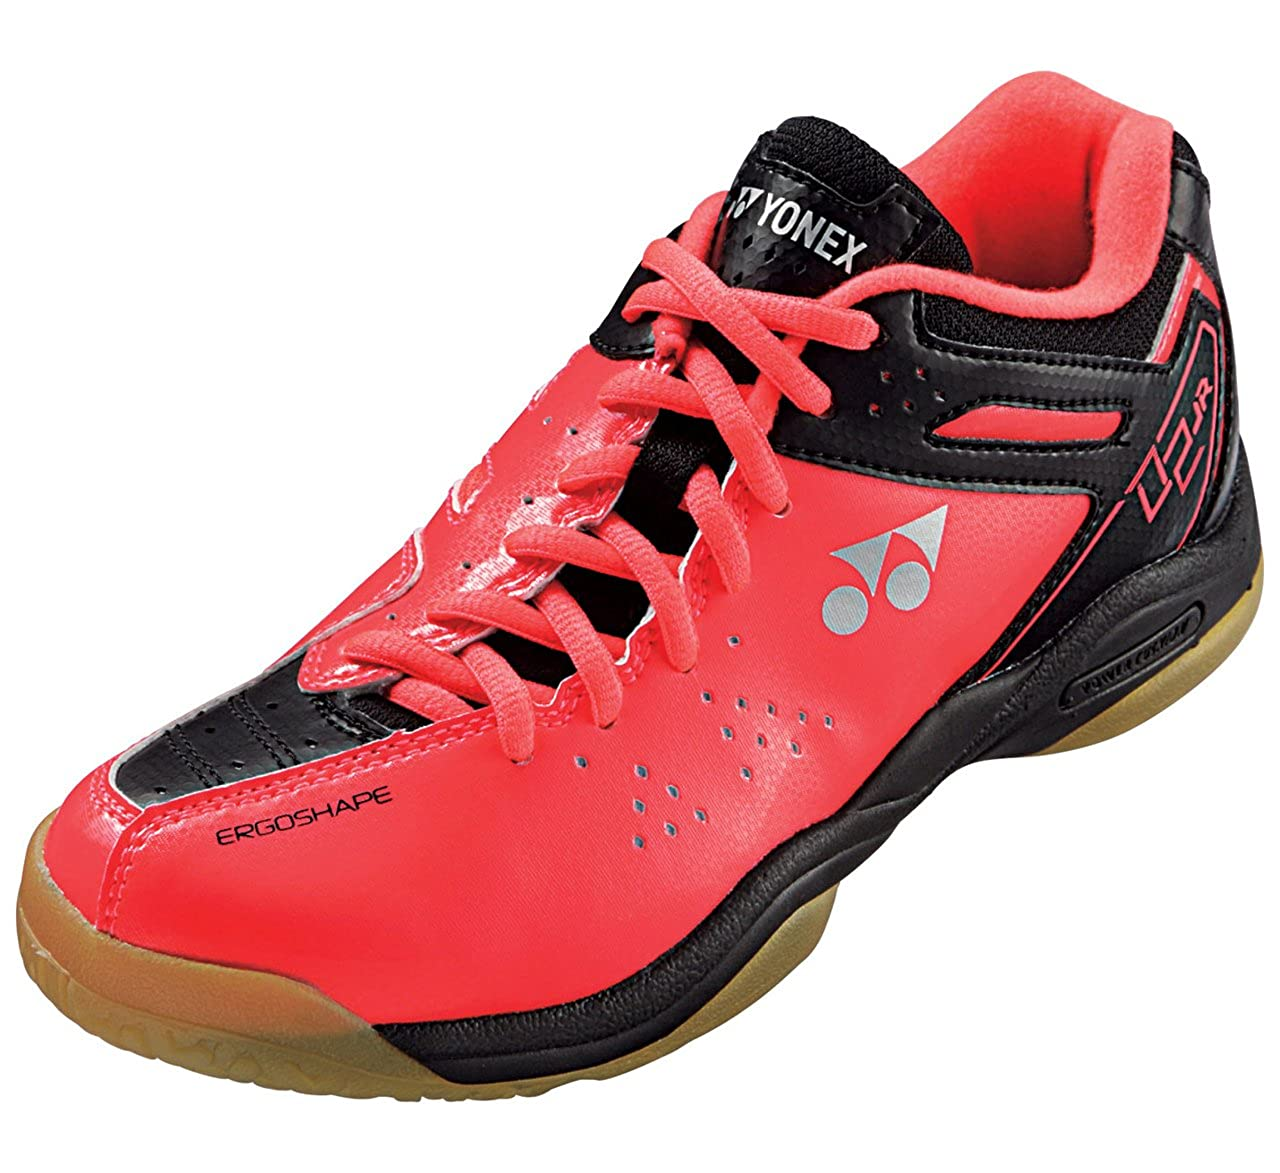 1f22512b4d2 Yonex Men's Power Cushion SHB-02 LTD Limited Edition Badminton Shoe-Bright  Red: Amazon.co.uk: Shoes & Bags